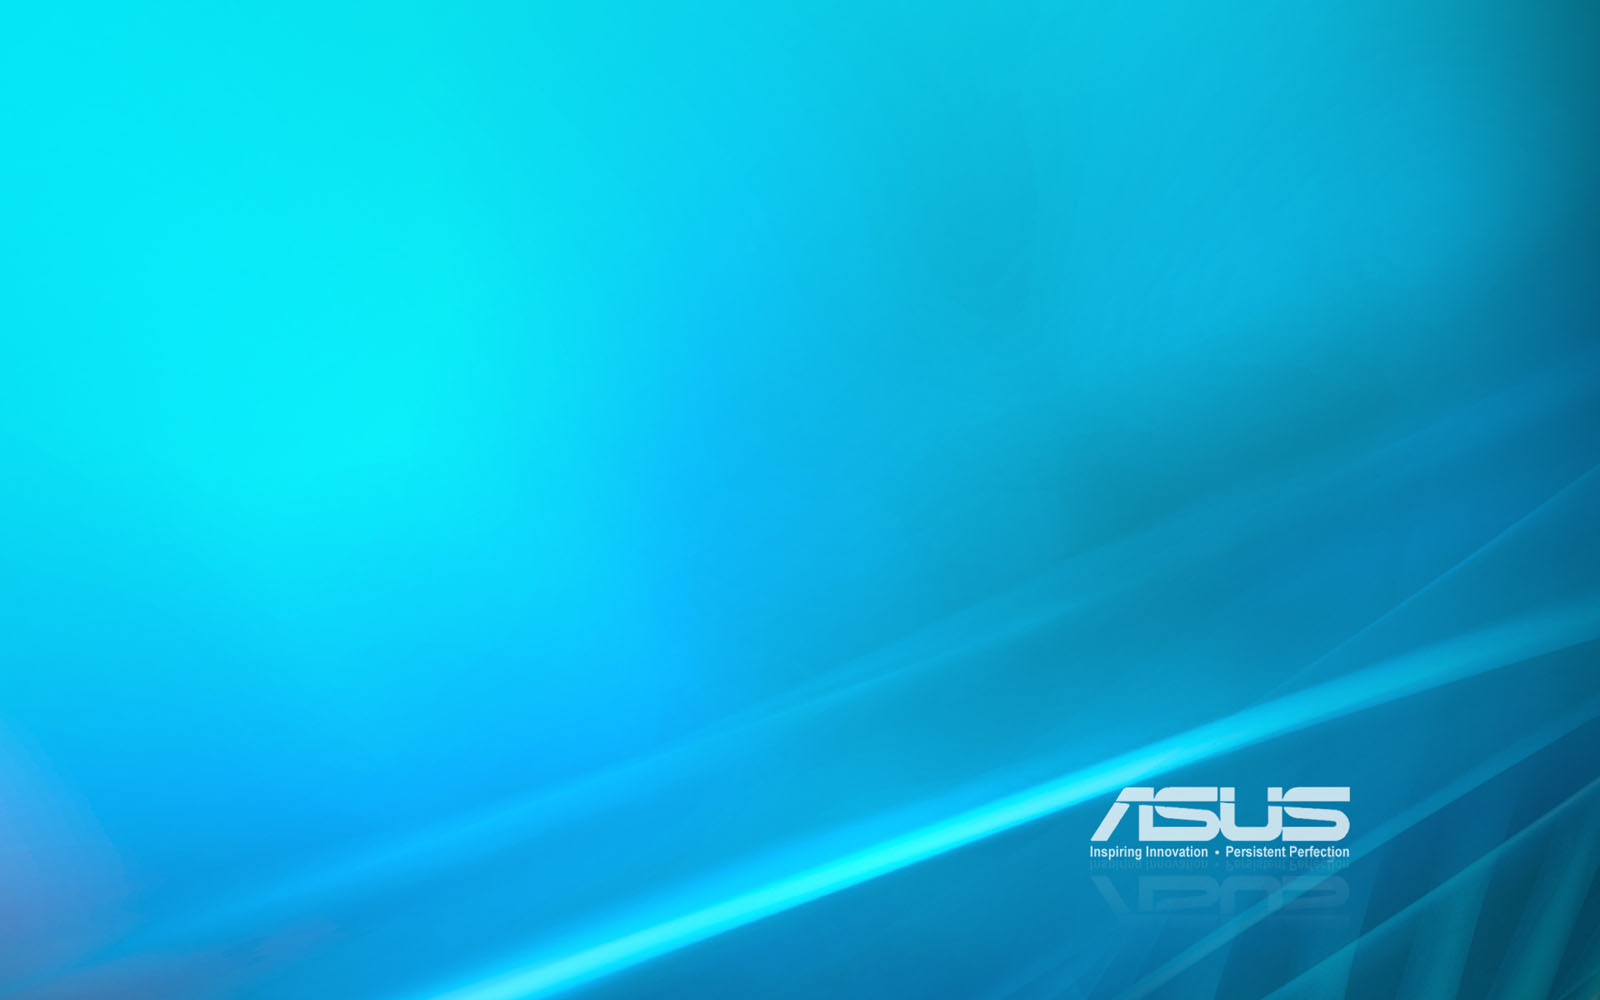 Wallpapers Asus Wallpapers